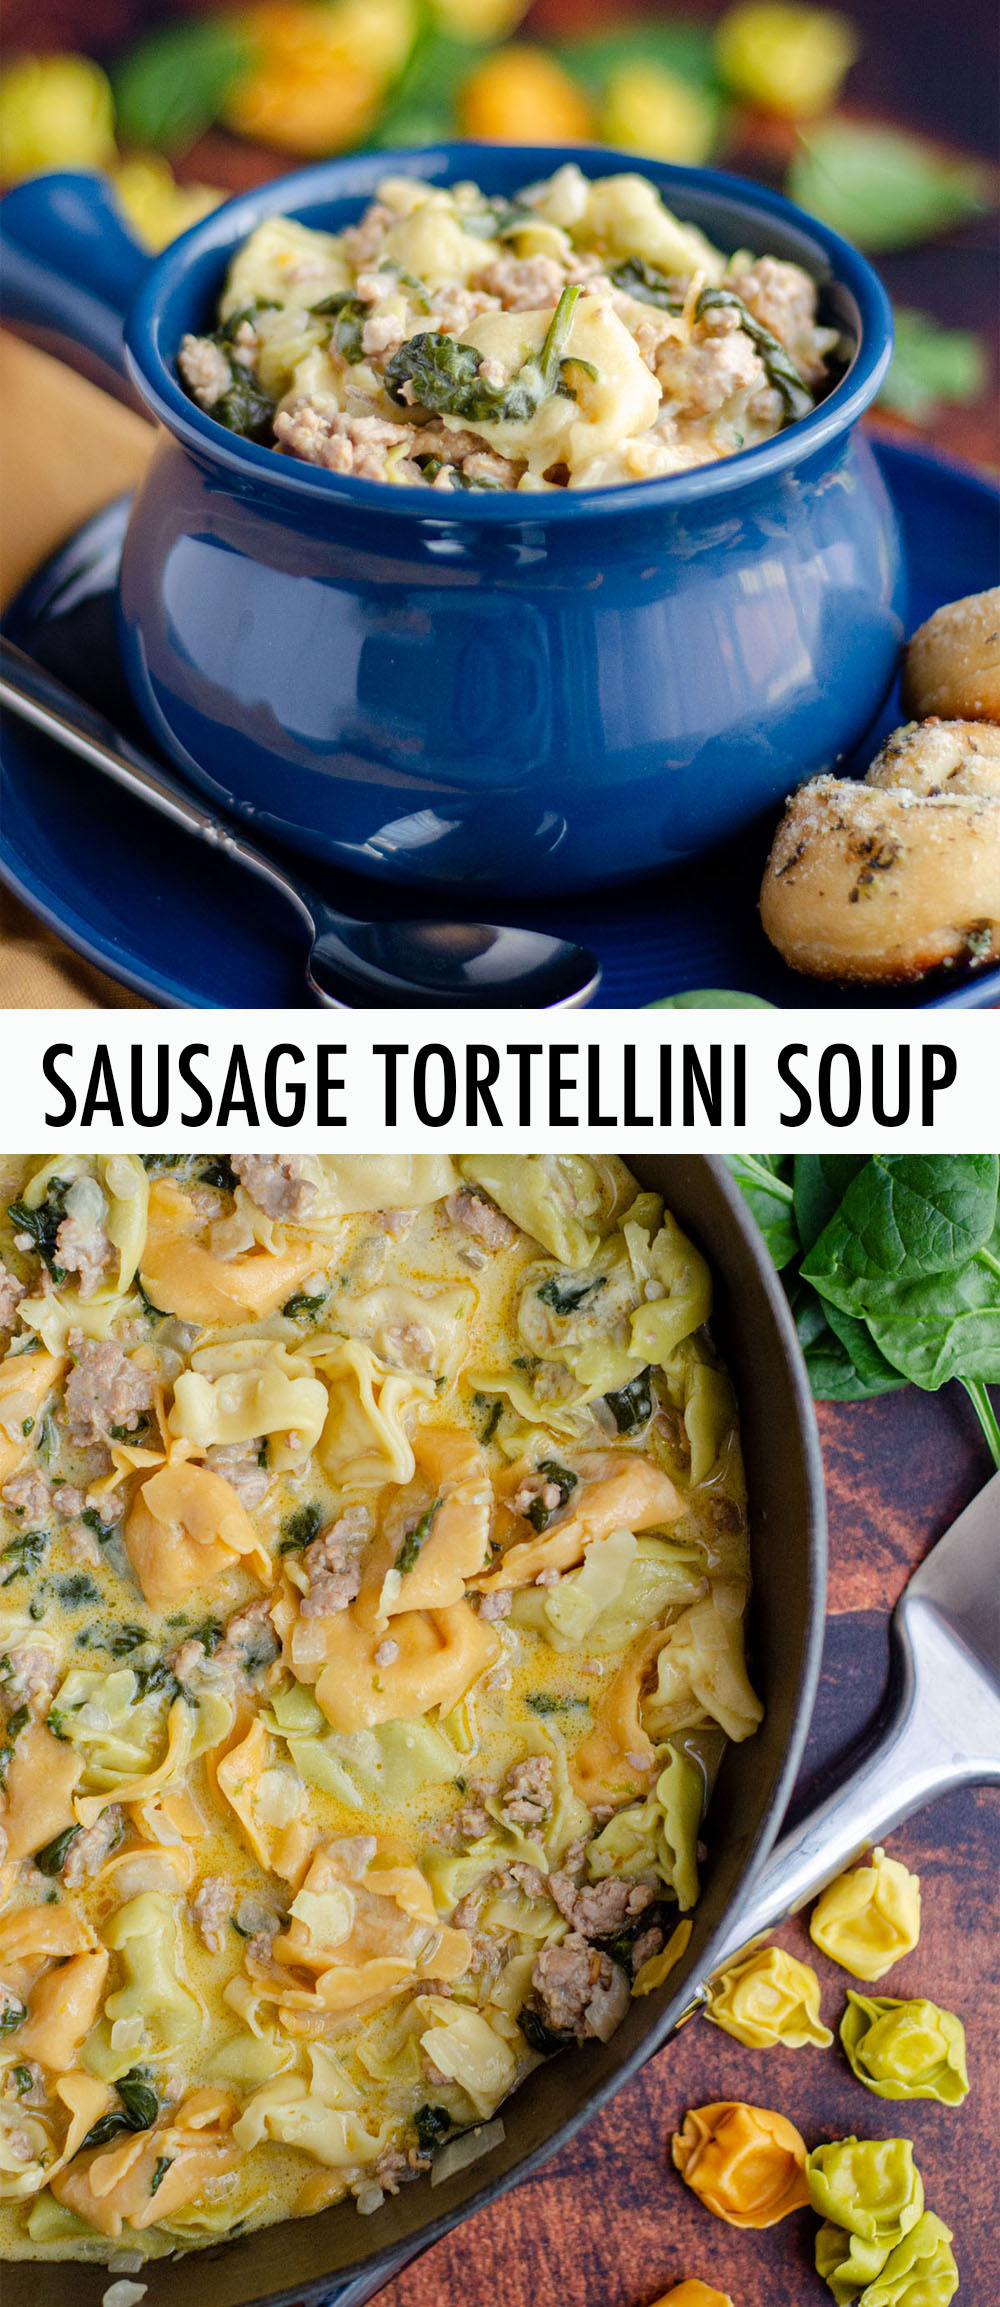 This easy Italian sausage tortellini soup is lightly creamy, full of flavor, and ready in about half an hour.